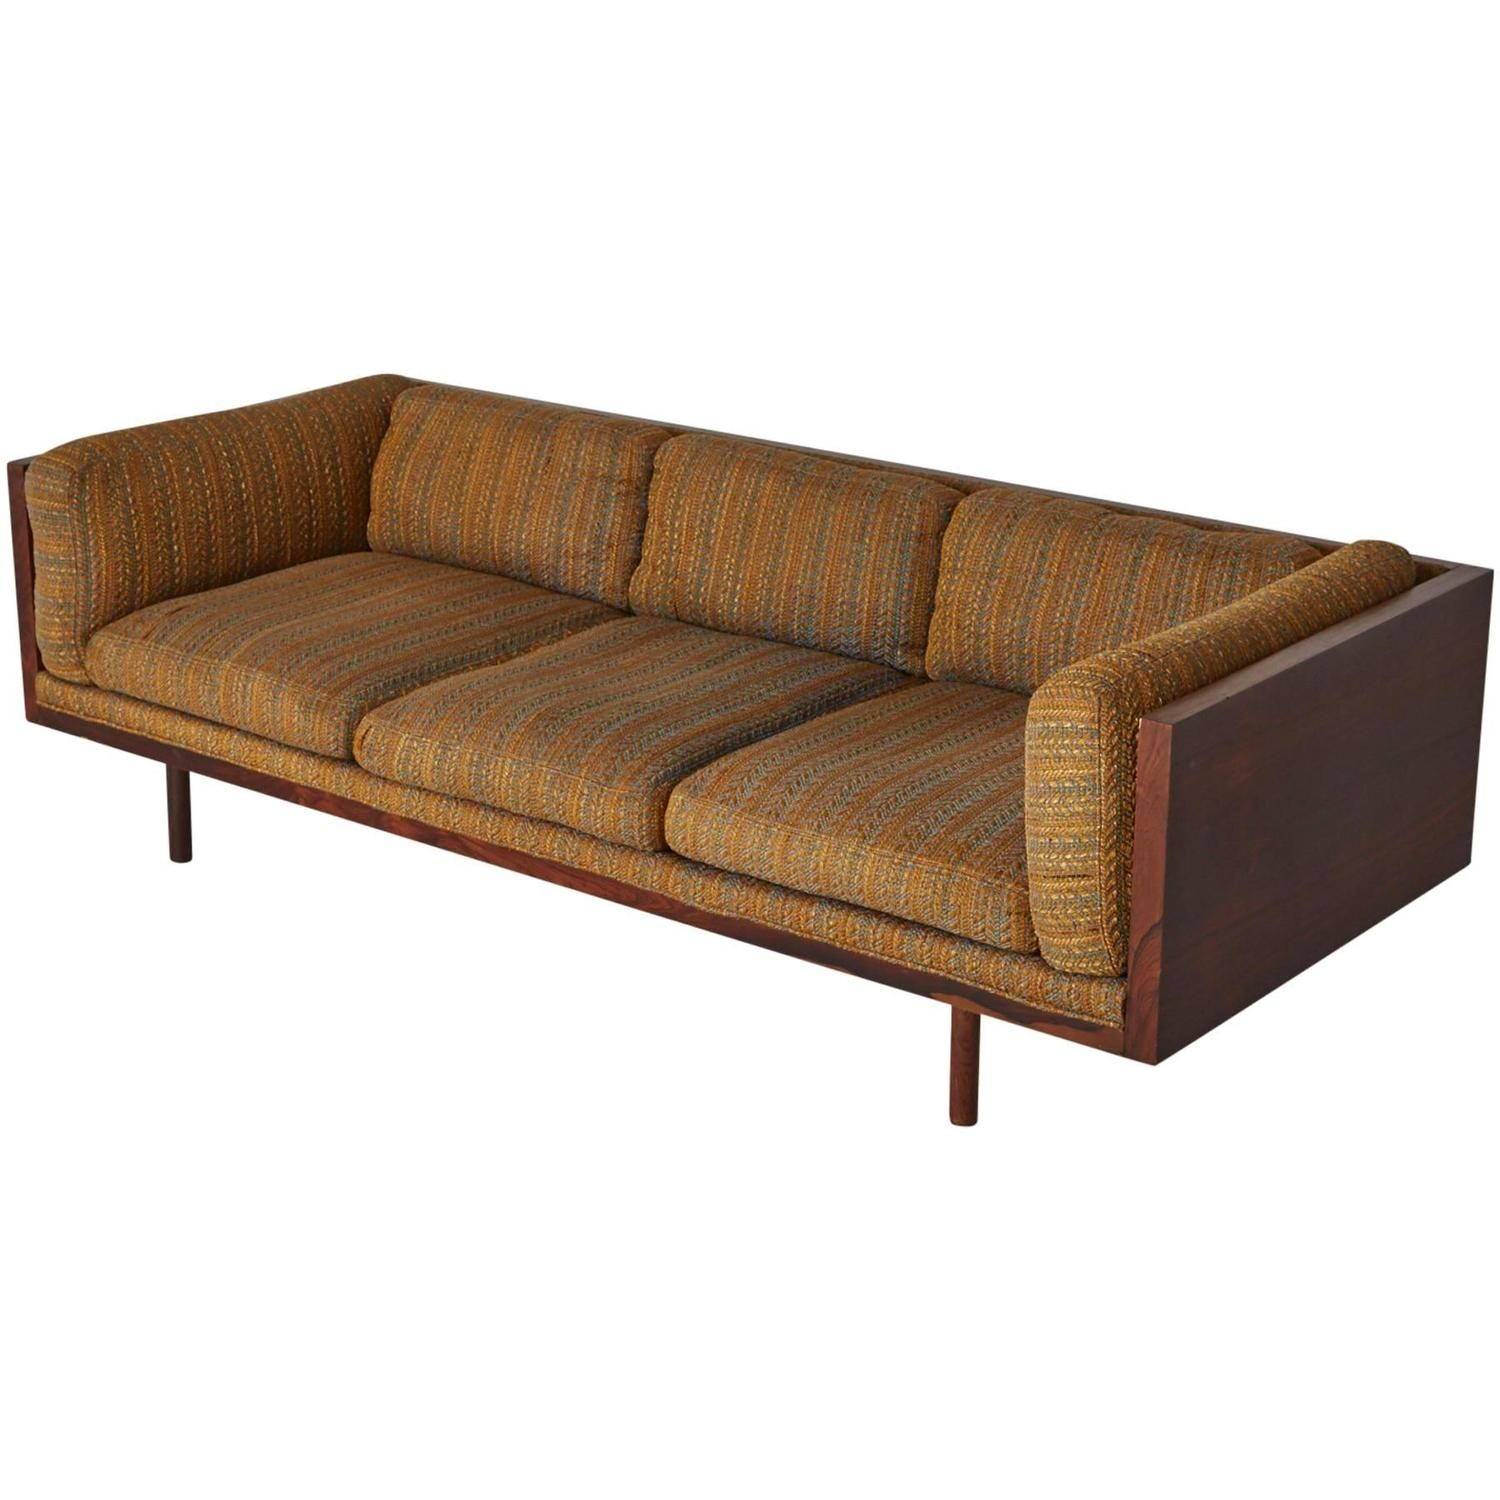 Rosewood Case Sofa By Milo Baughman For Thayer Coggin On 1